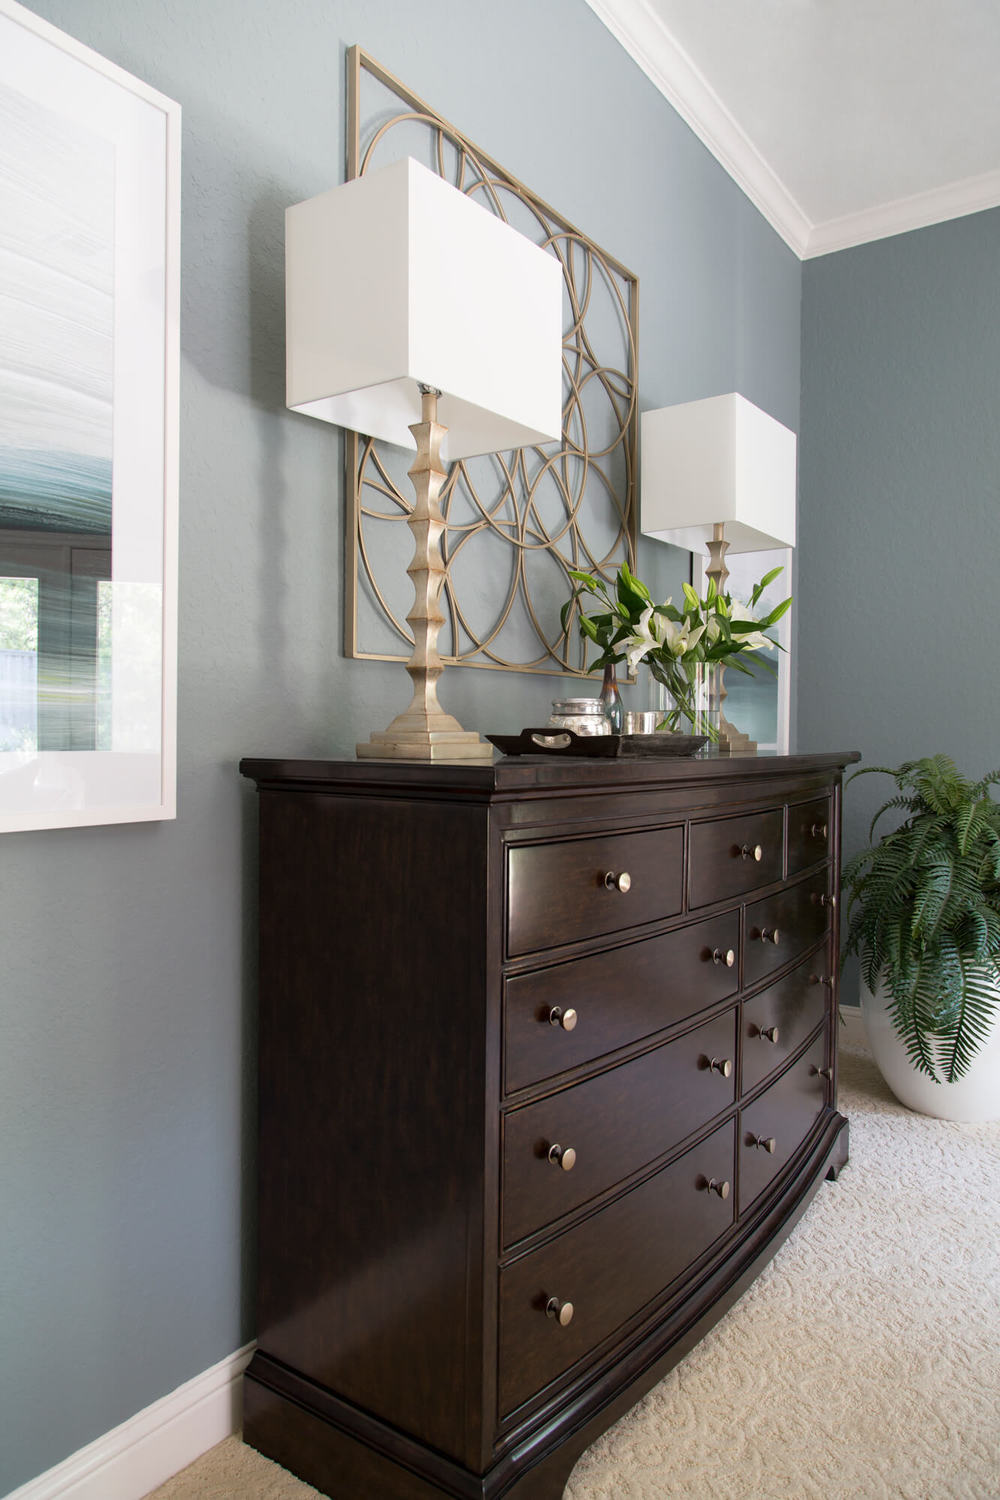 Bedroom dresser with lamps | Interior Designer: Carla Aston